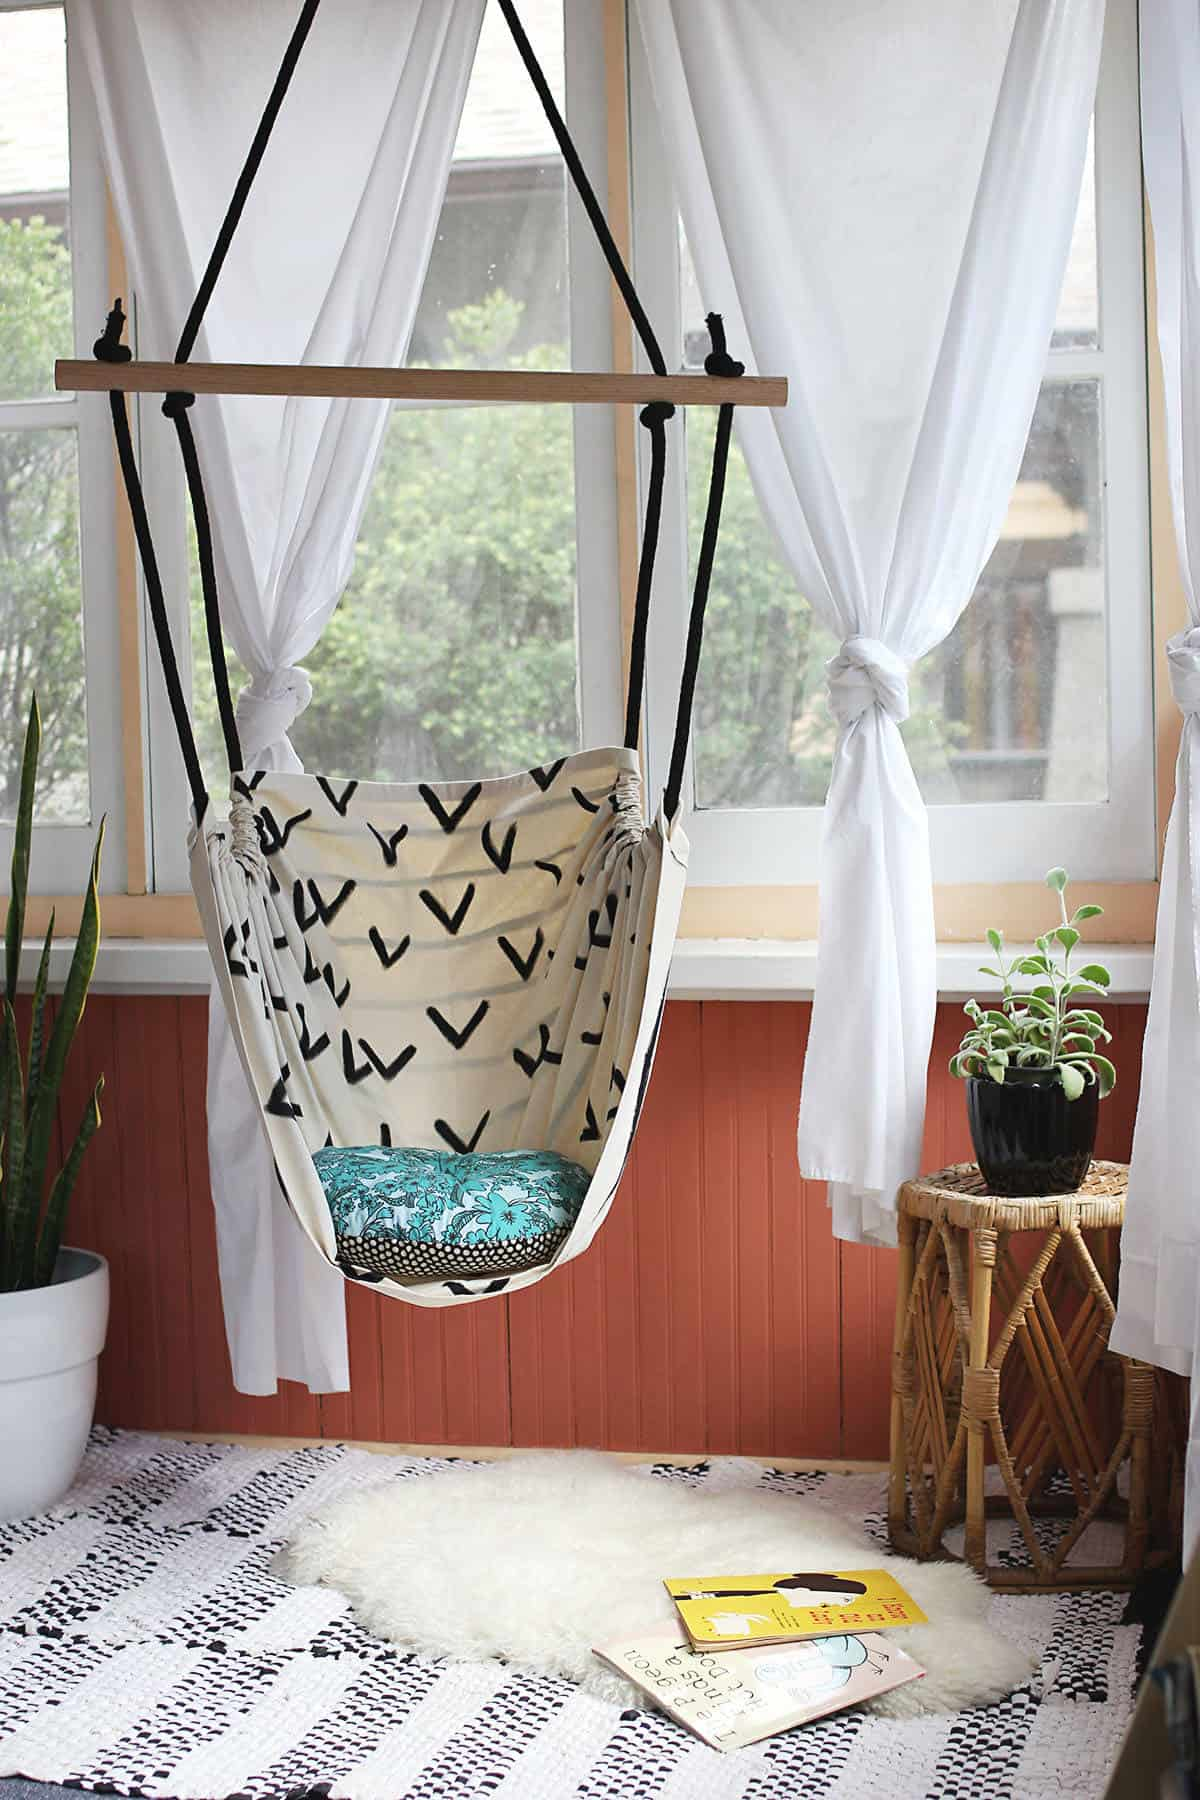 Best perfect ideas canvas hammock design pinterest #19462.